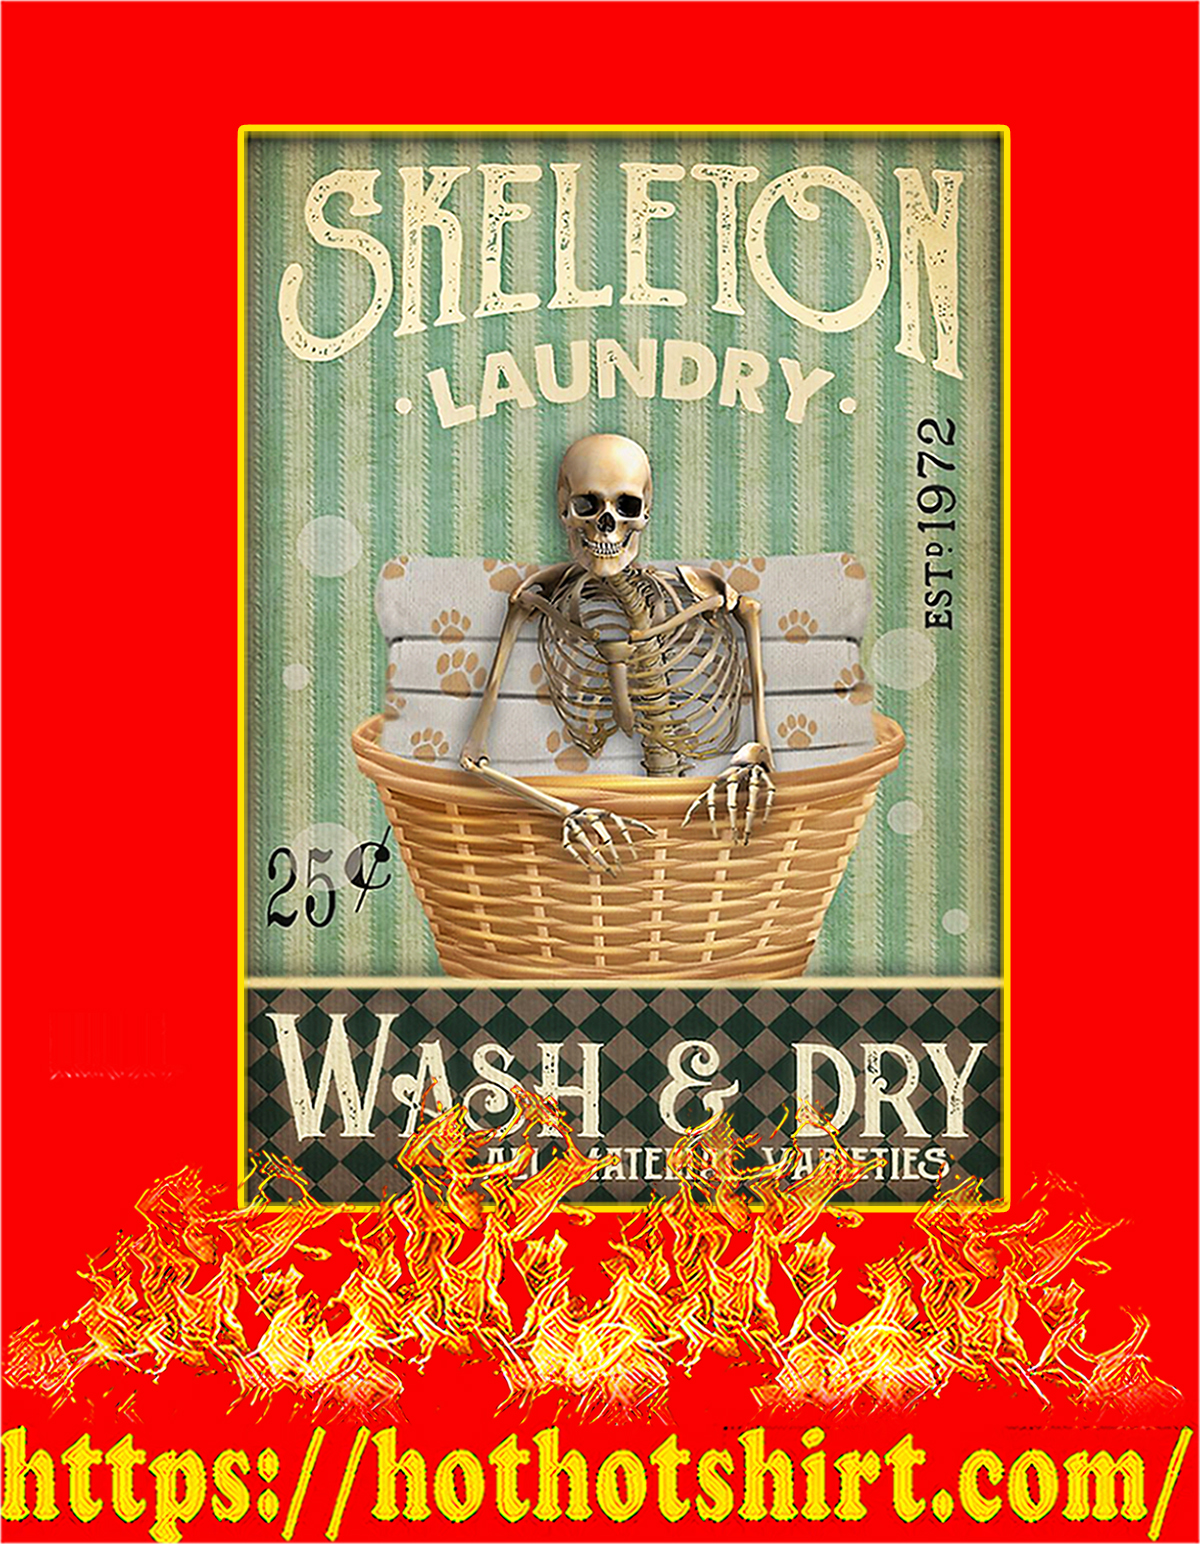 Skeleton laundry wash and dry poster